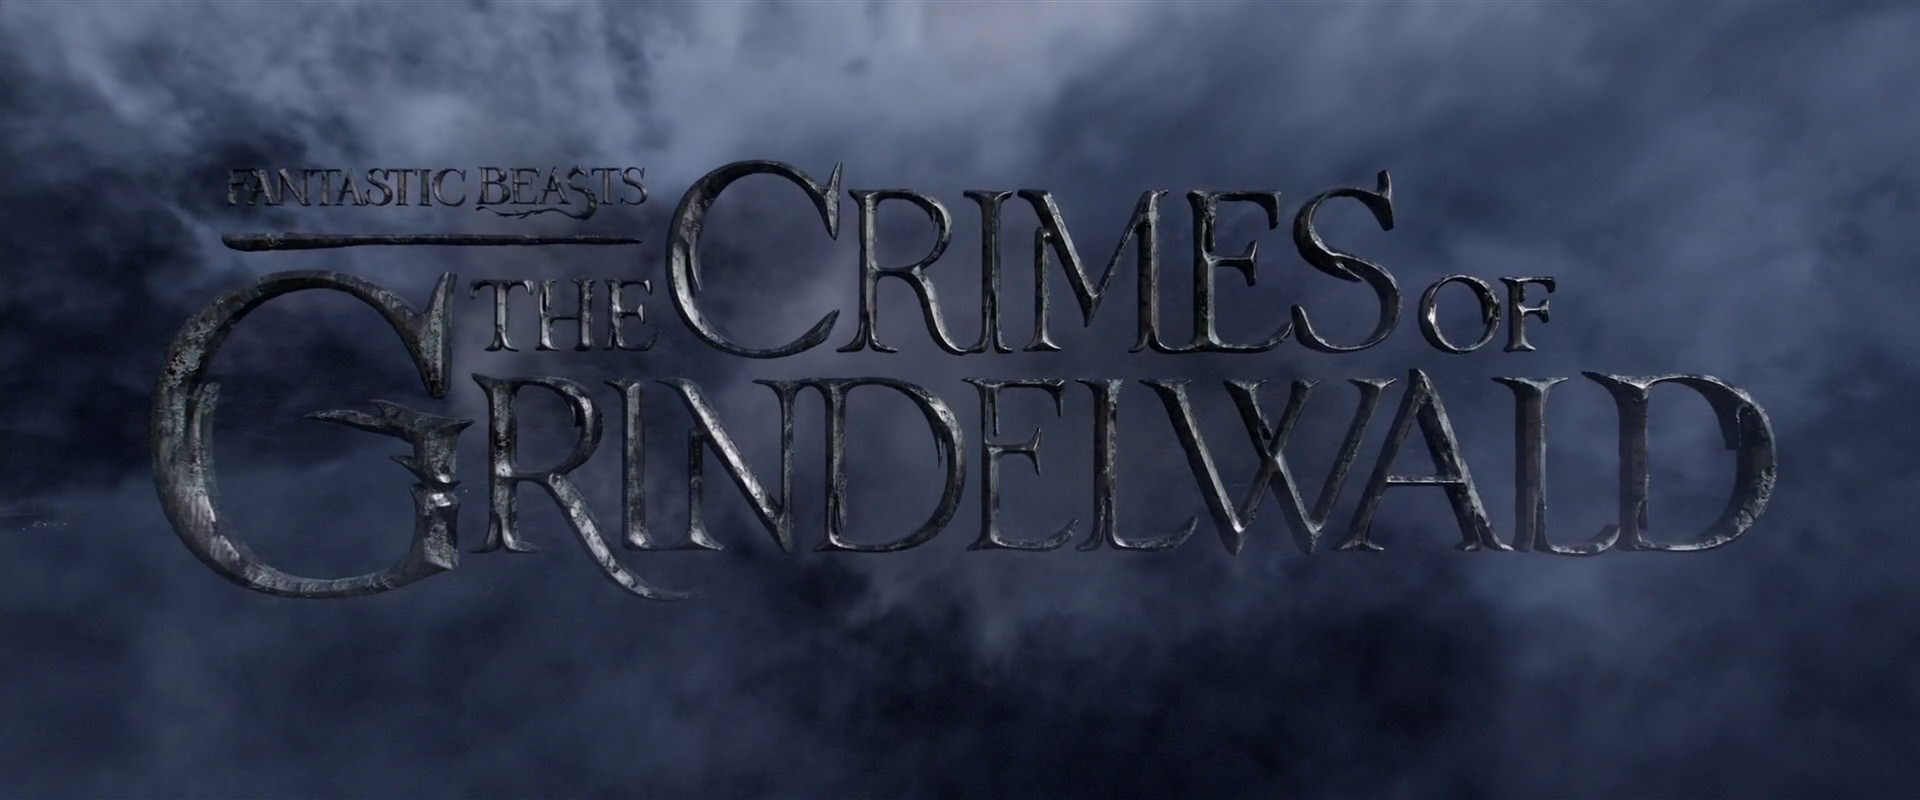 fantastic beasts and where to find them 1080p bluray download